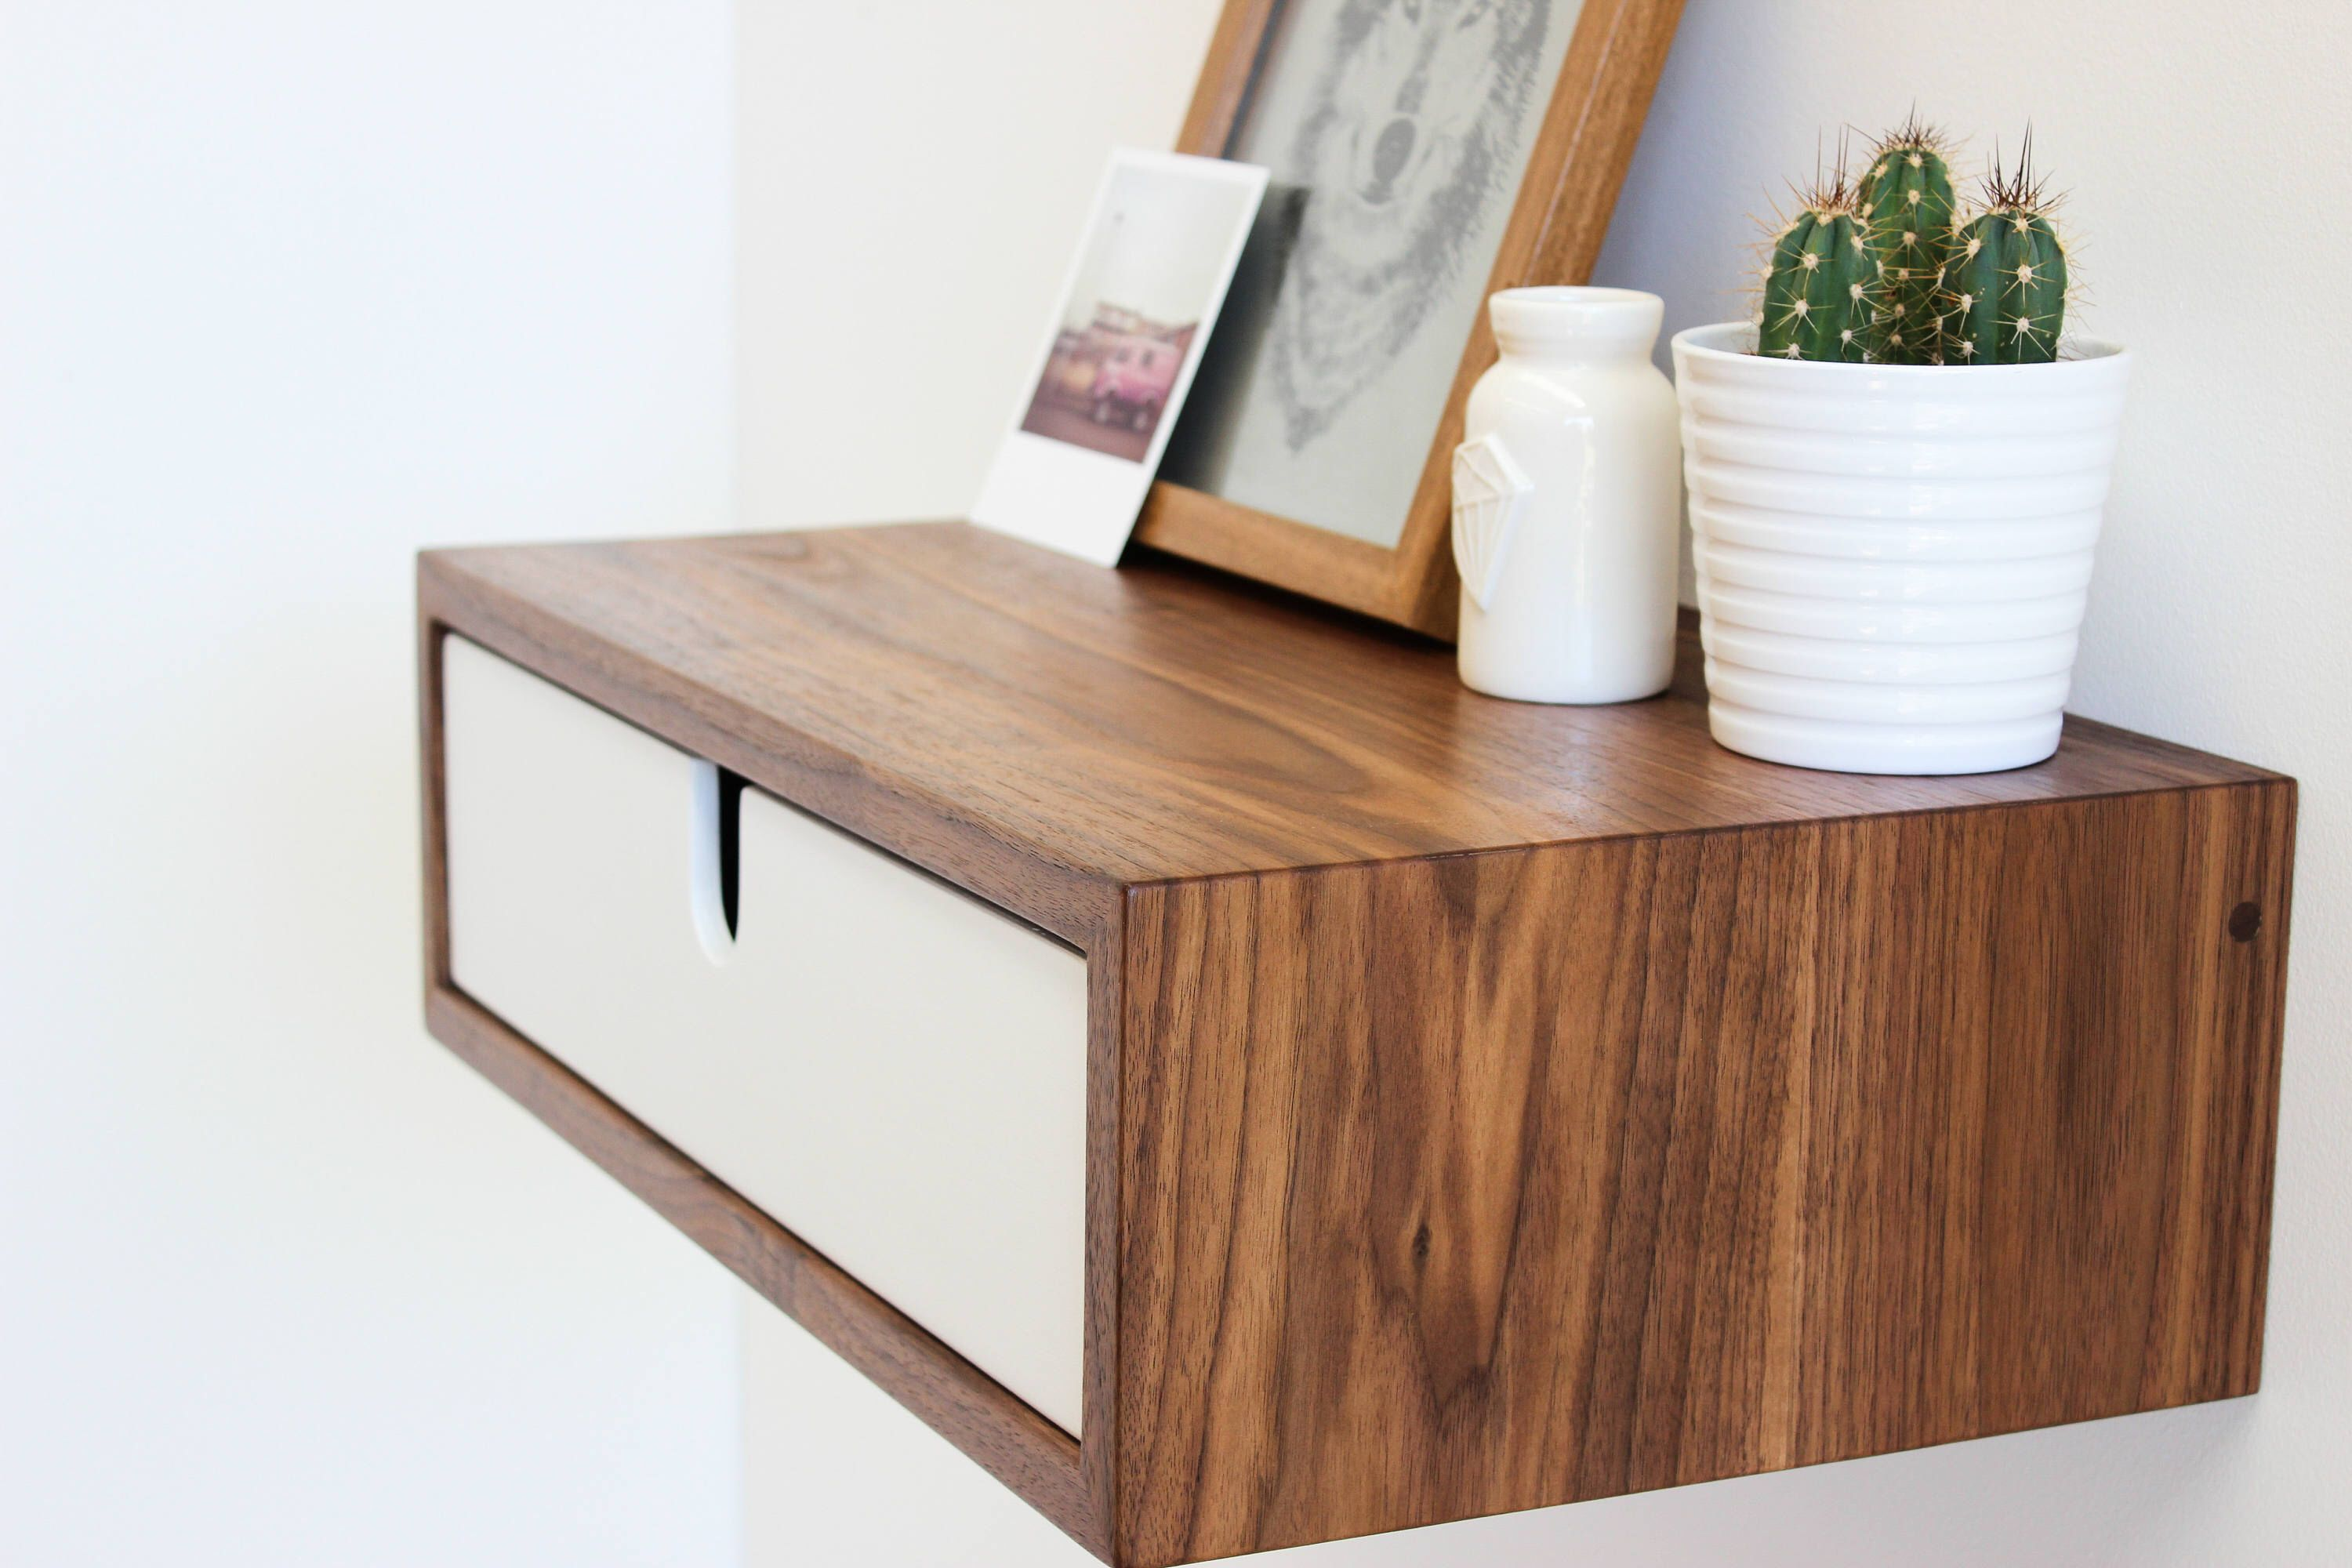 Floating Nightstand Bedside Table By Imagofurniture On Etsy Httpswwwetsy